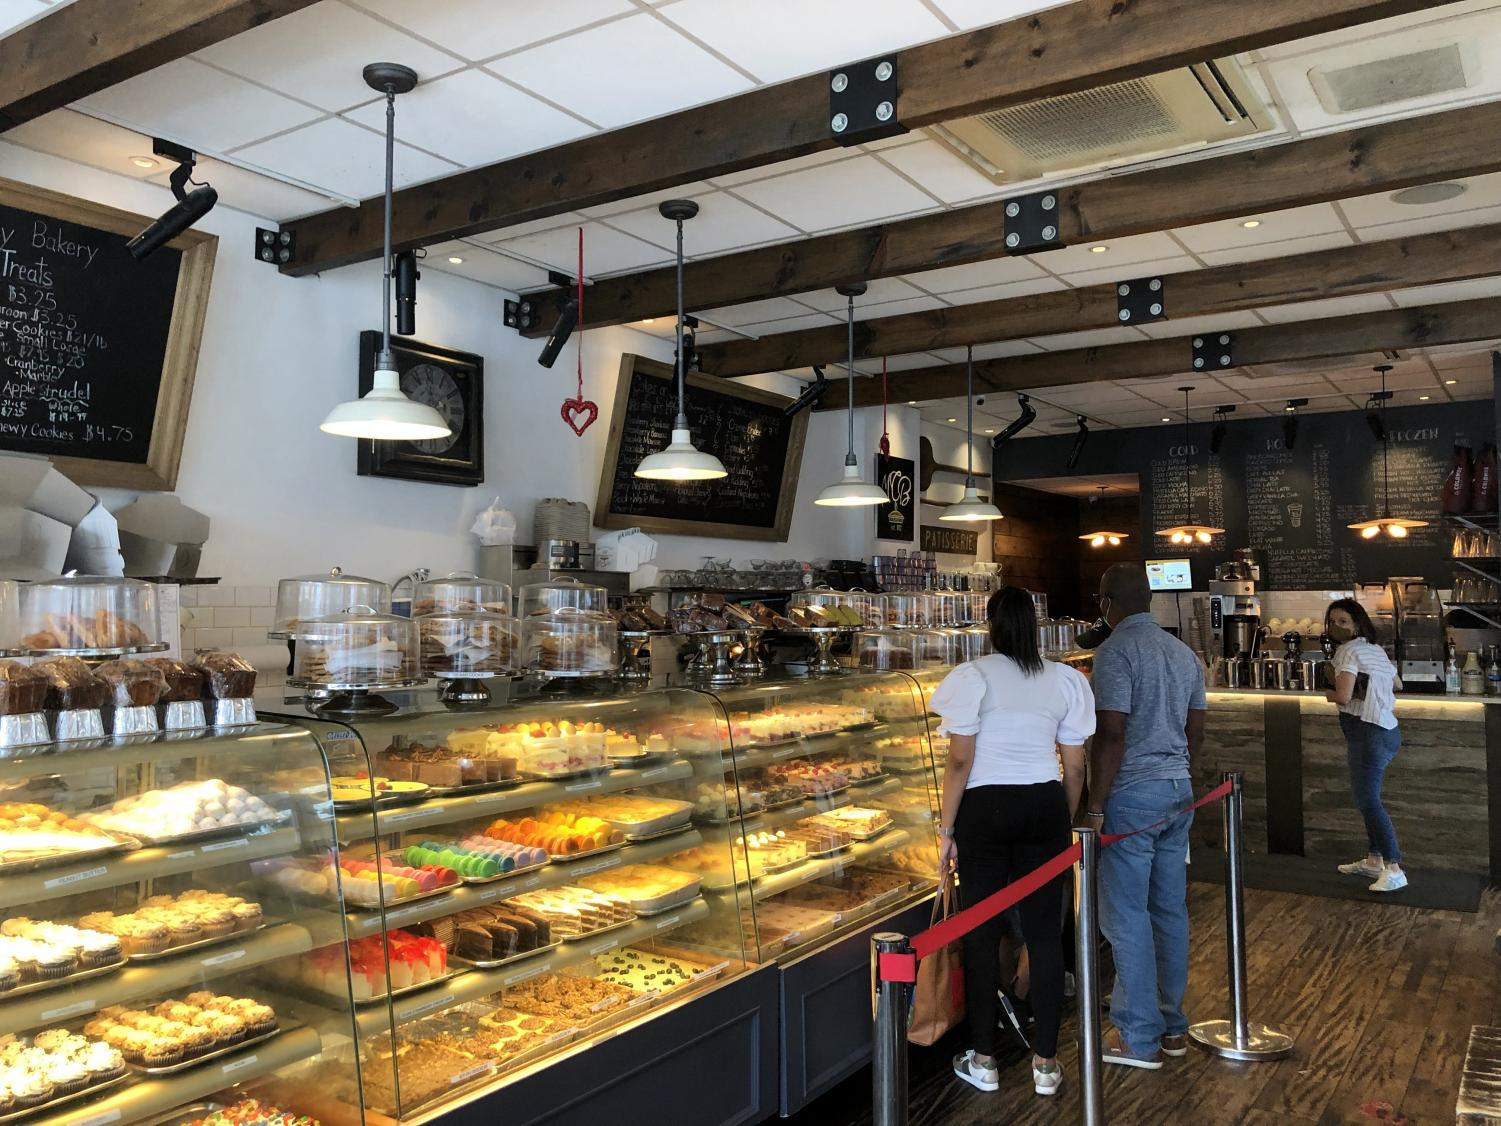 Inside of Martha's Country Bakery in Astoria, many baked goods line lit shelves behind glass